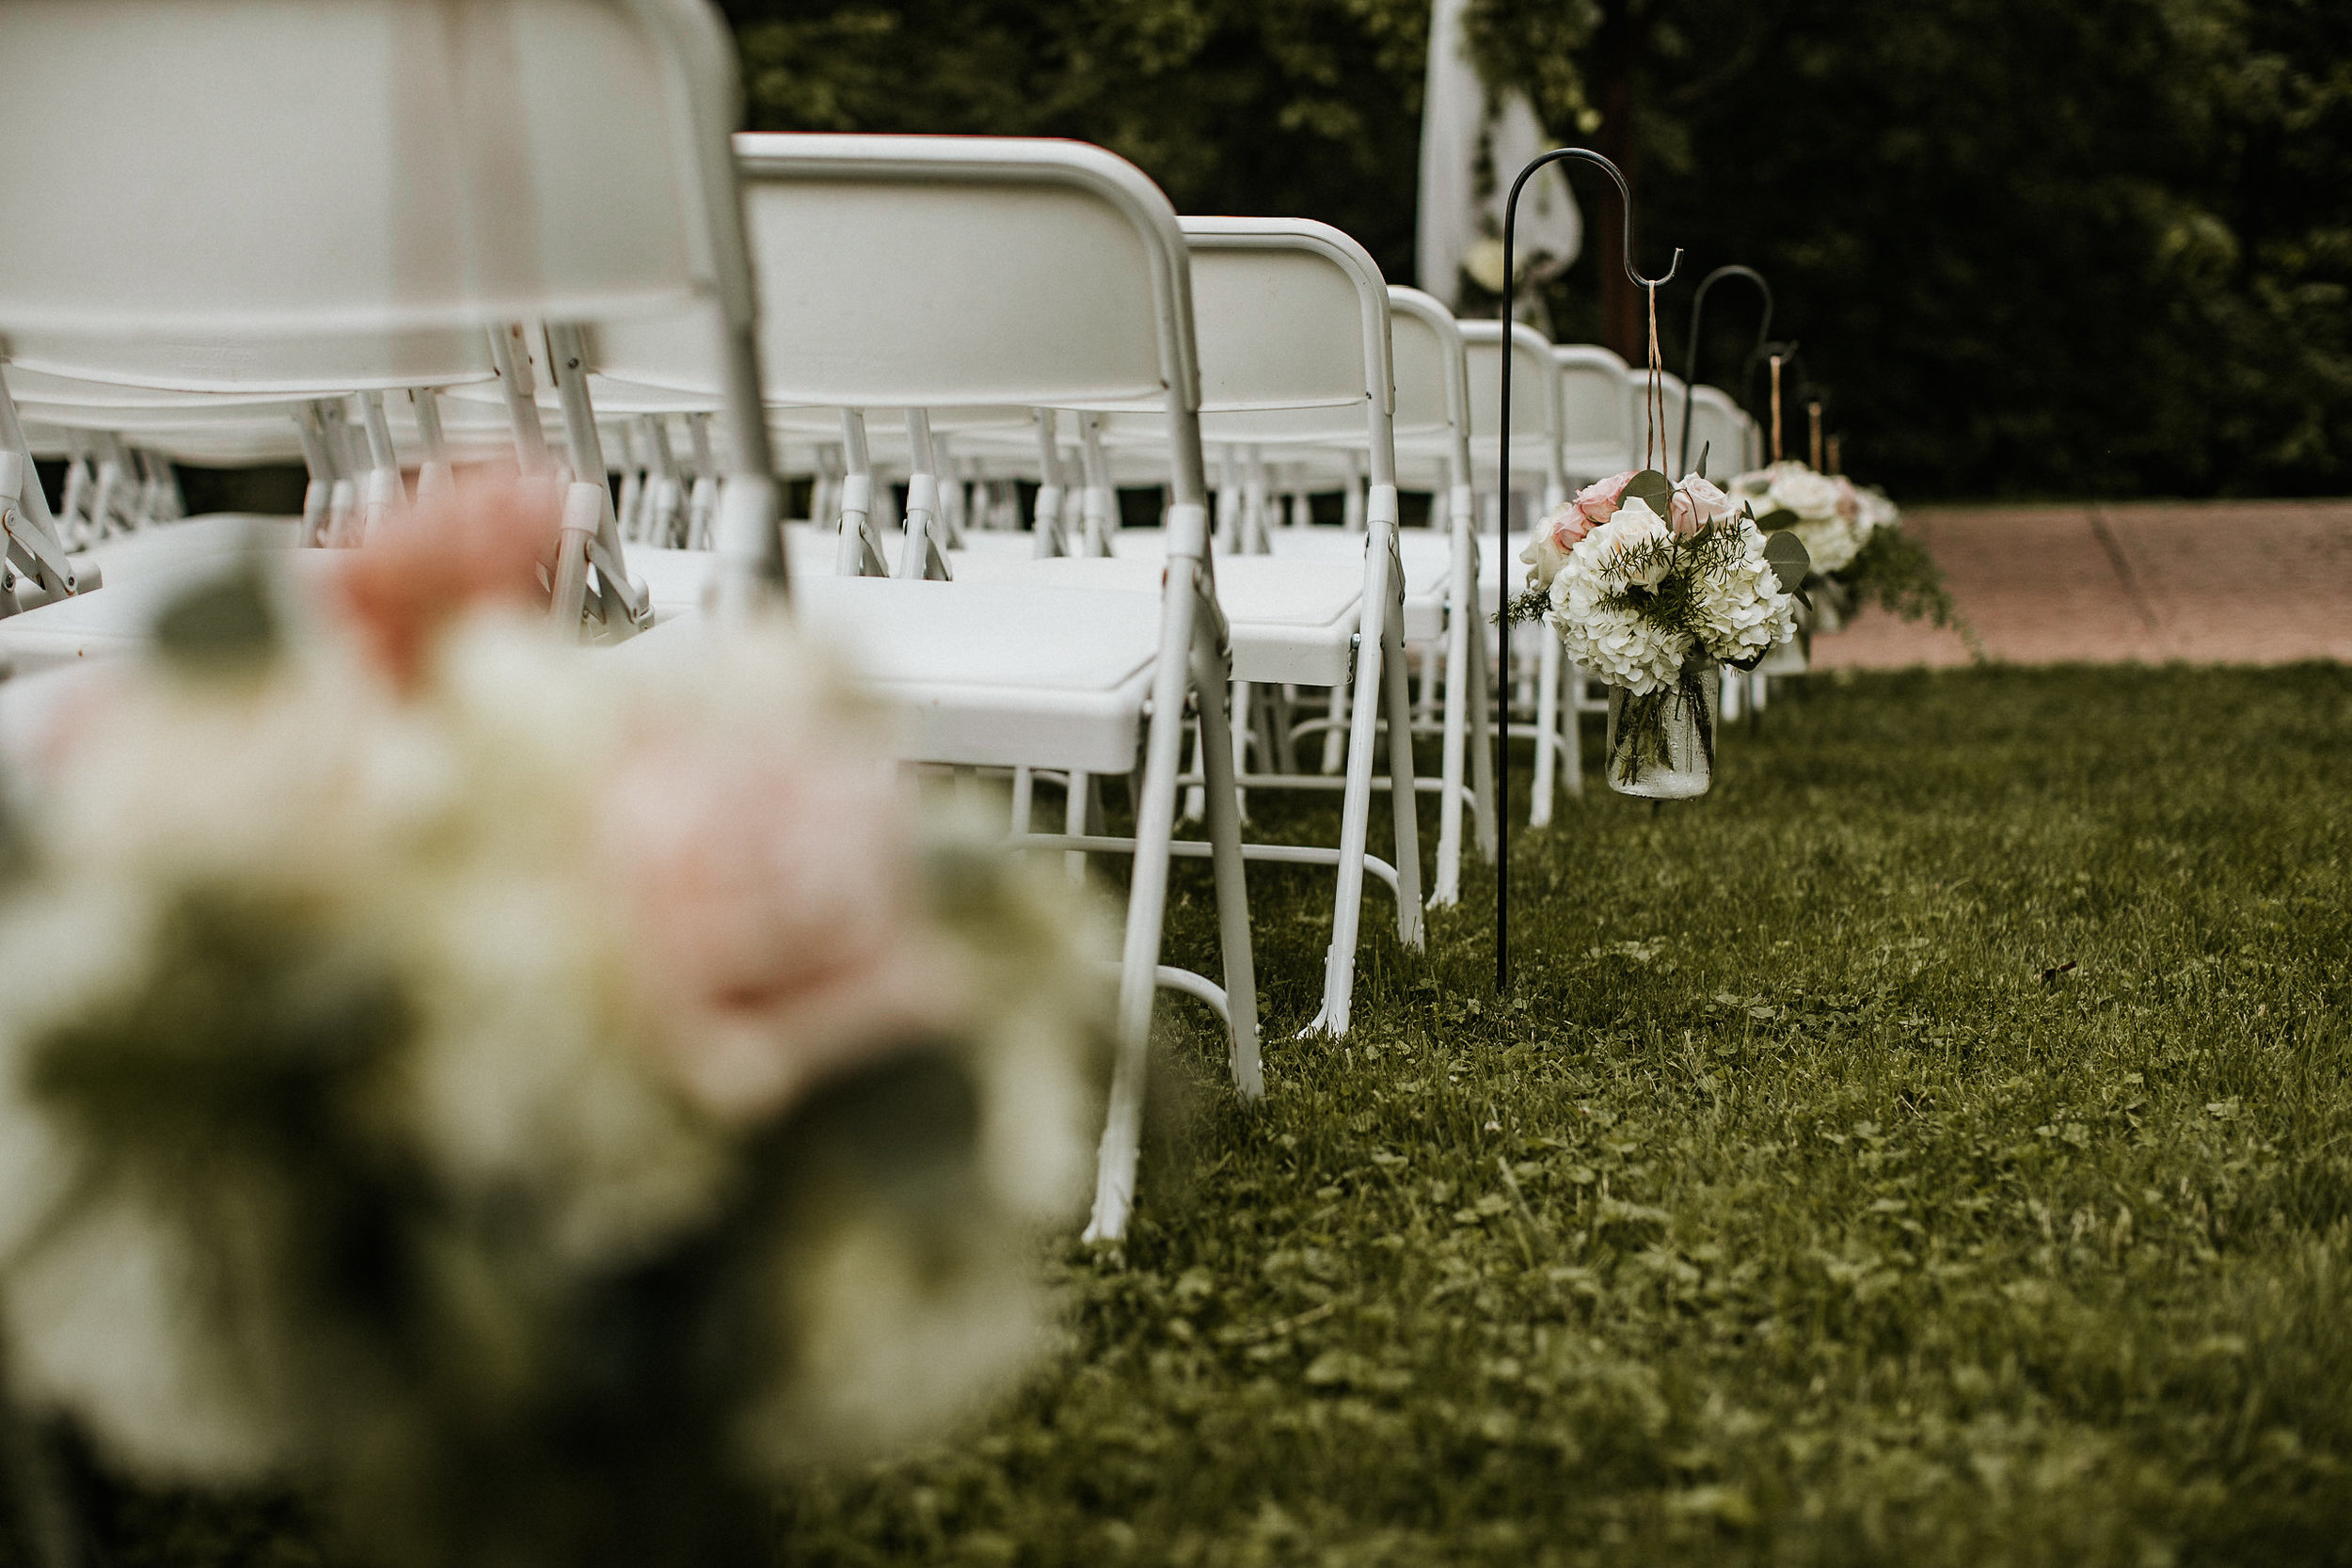 Wedding flowers and folding chairs